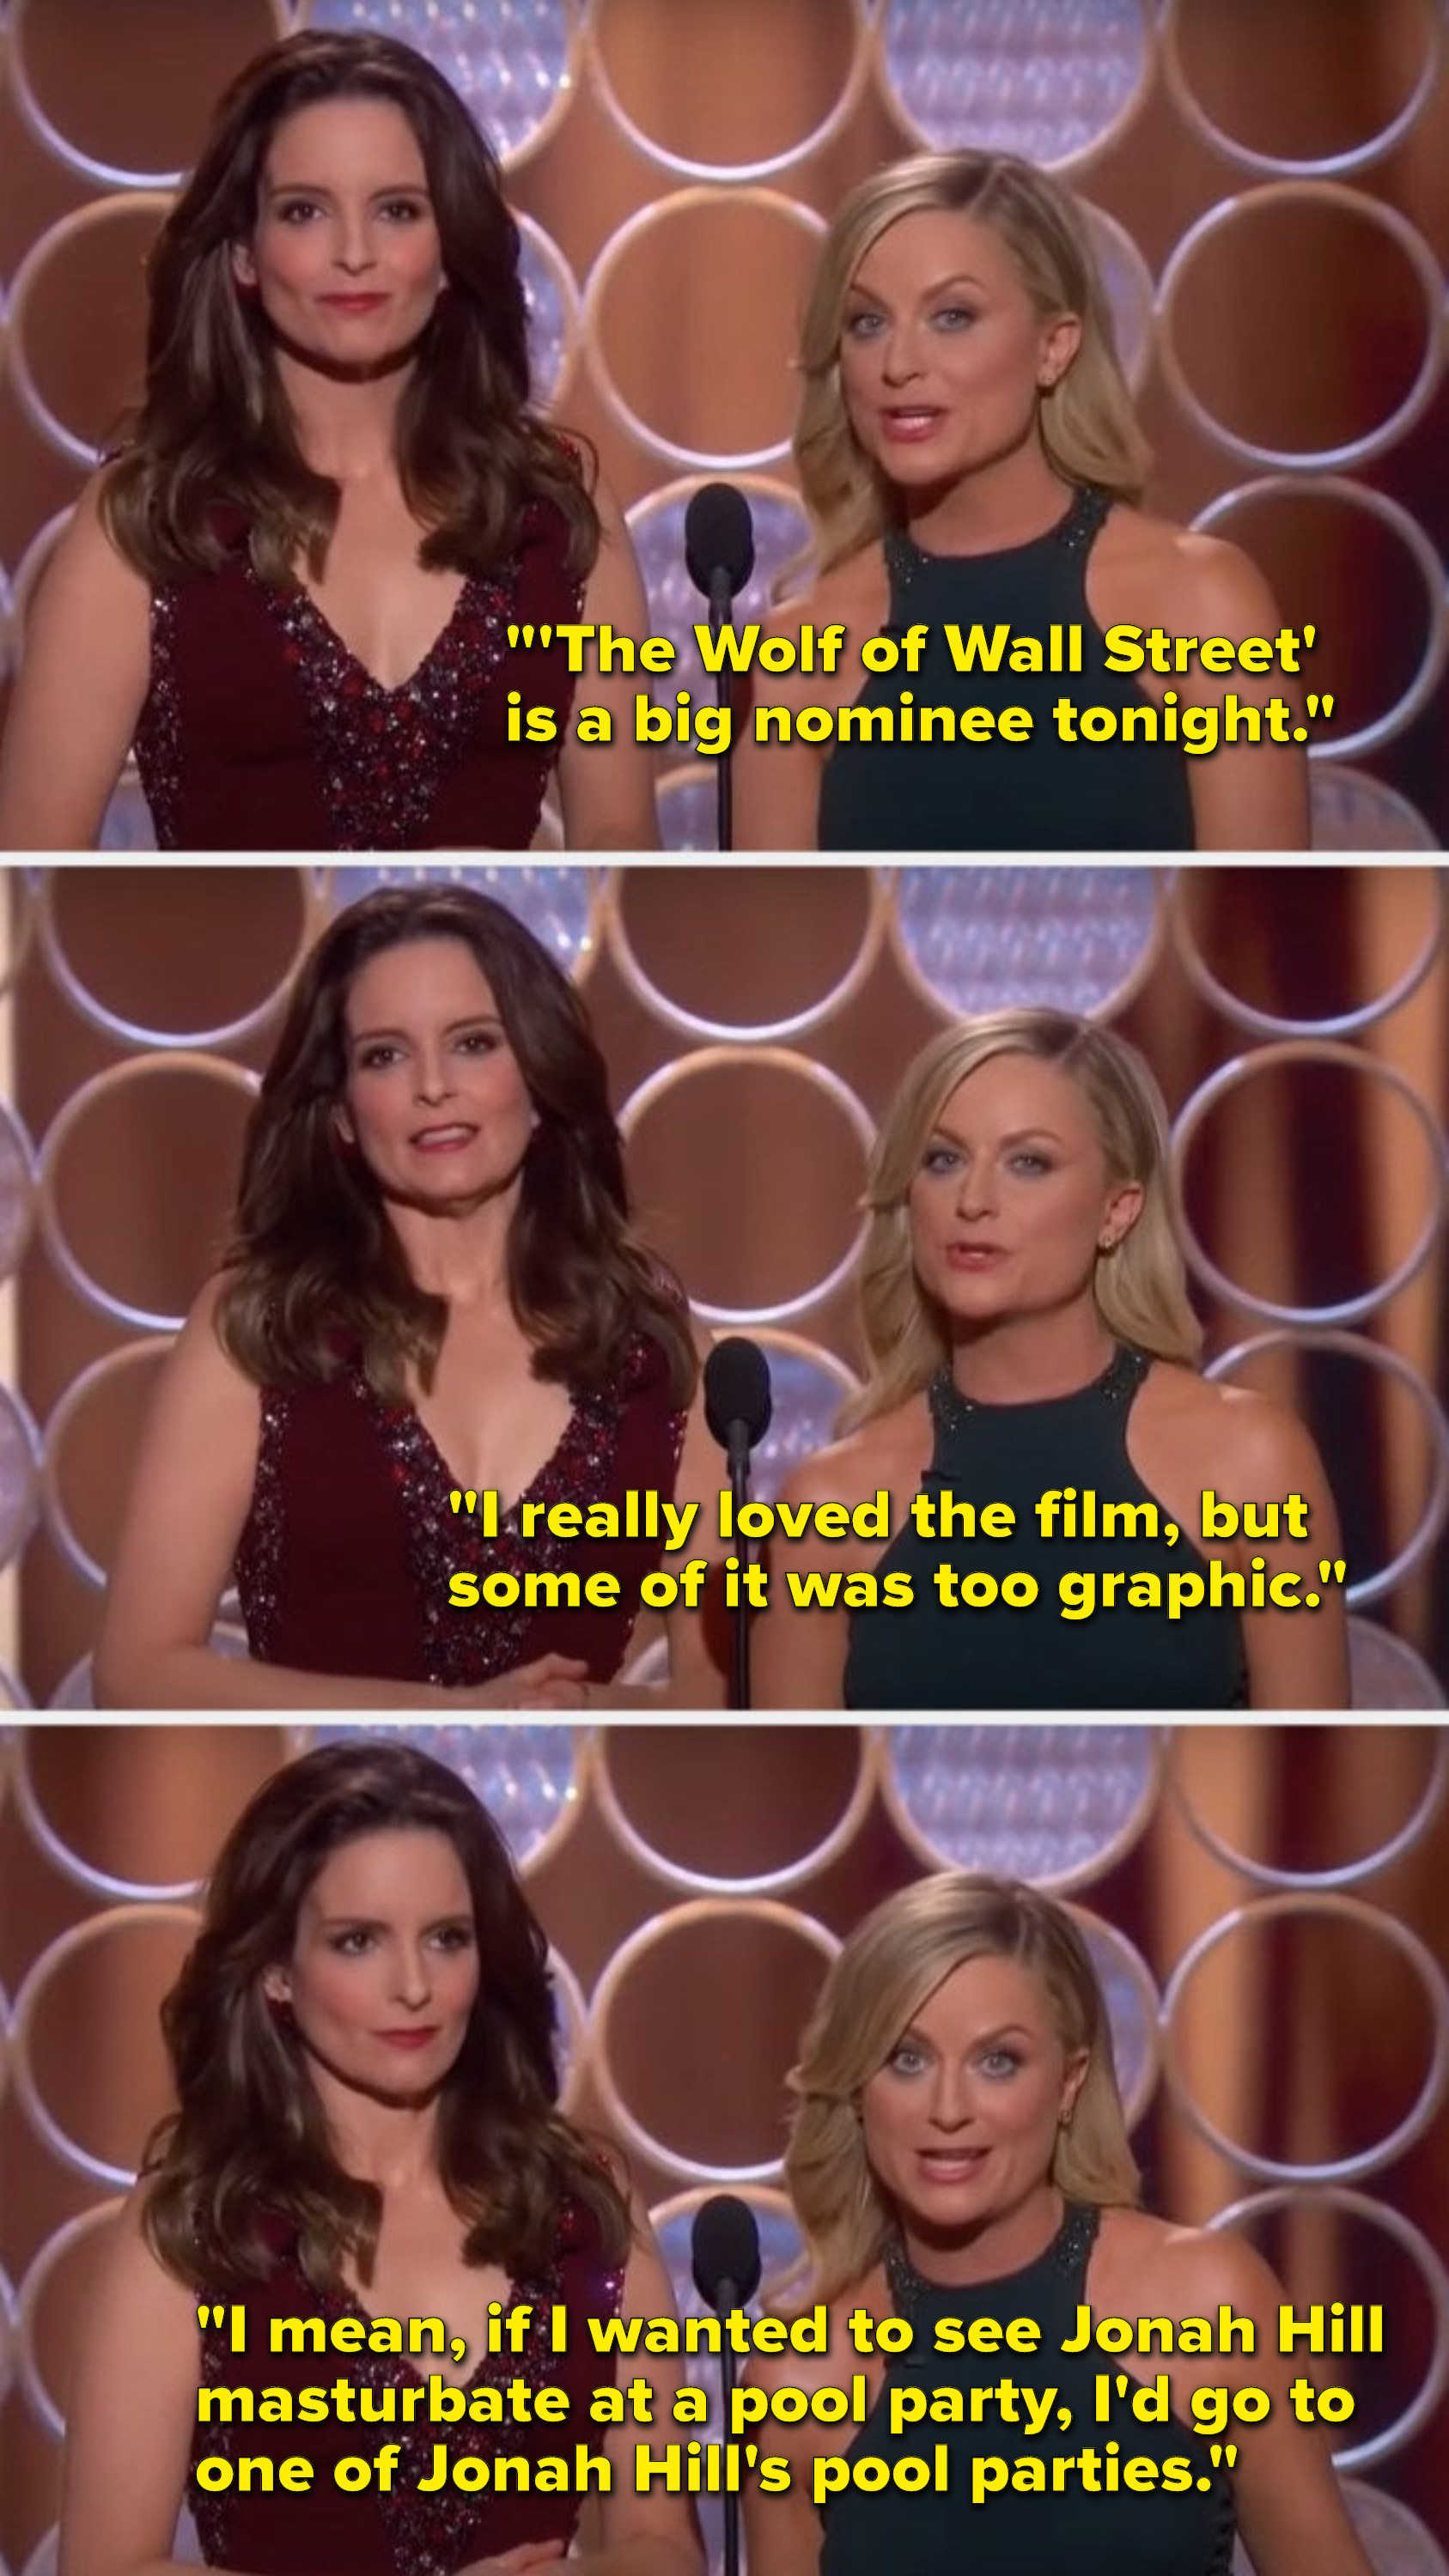 """Poehler says, """"'The Wolf of Wall Street is a big nominee tonight, I really loved the film, but some of it was too graphic, I mean, if I wanted to see Jonah Hill masturbate at a pool party, I'd go to one of Jonah Hill's pool parties"""""""